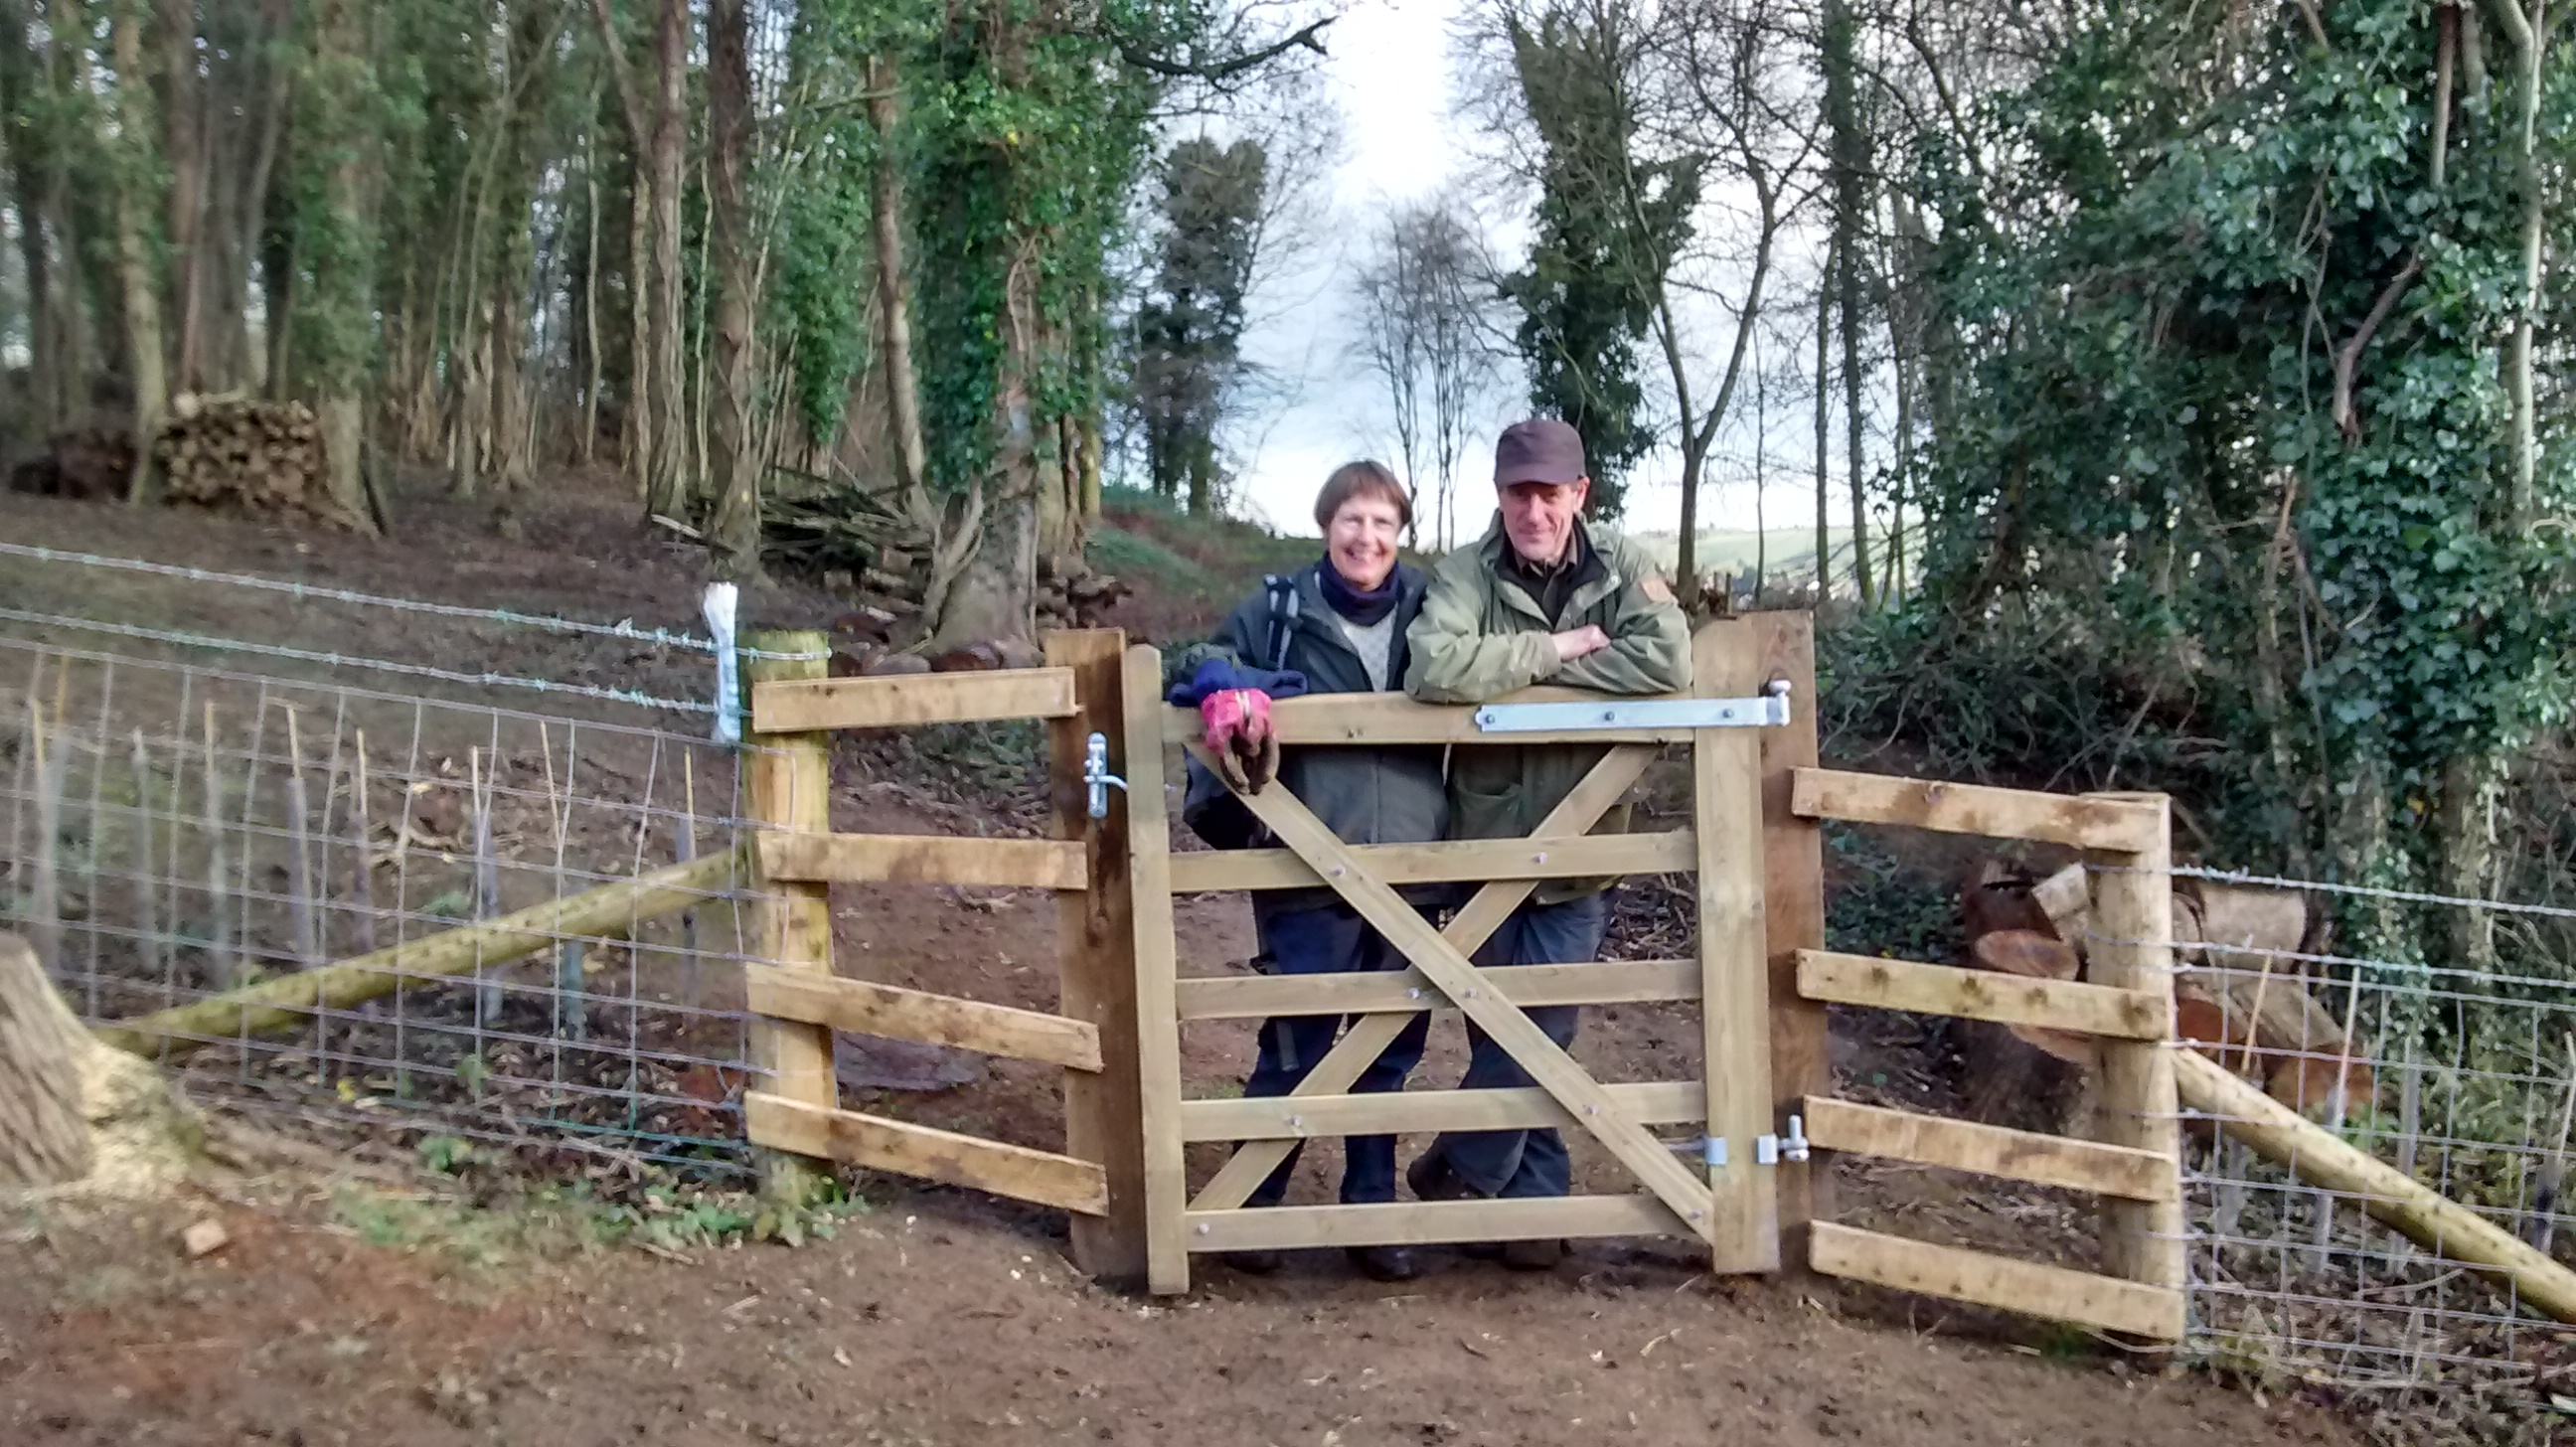 Newly completed fencing and gate at Elliker Wood, East Keswick